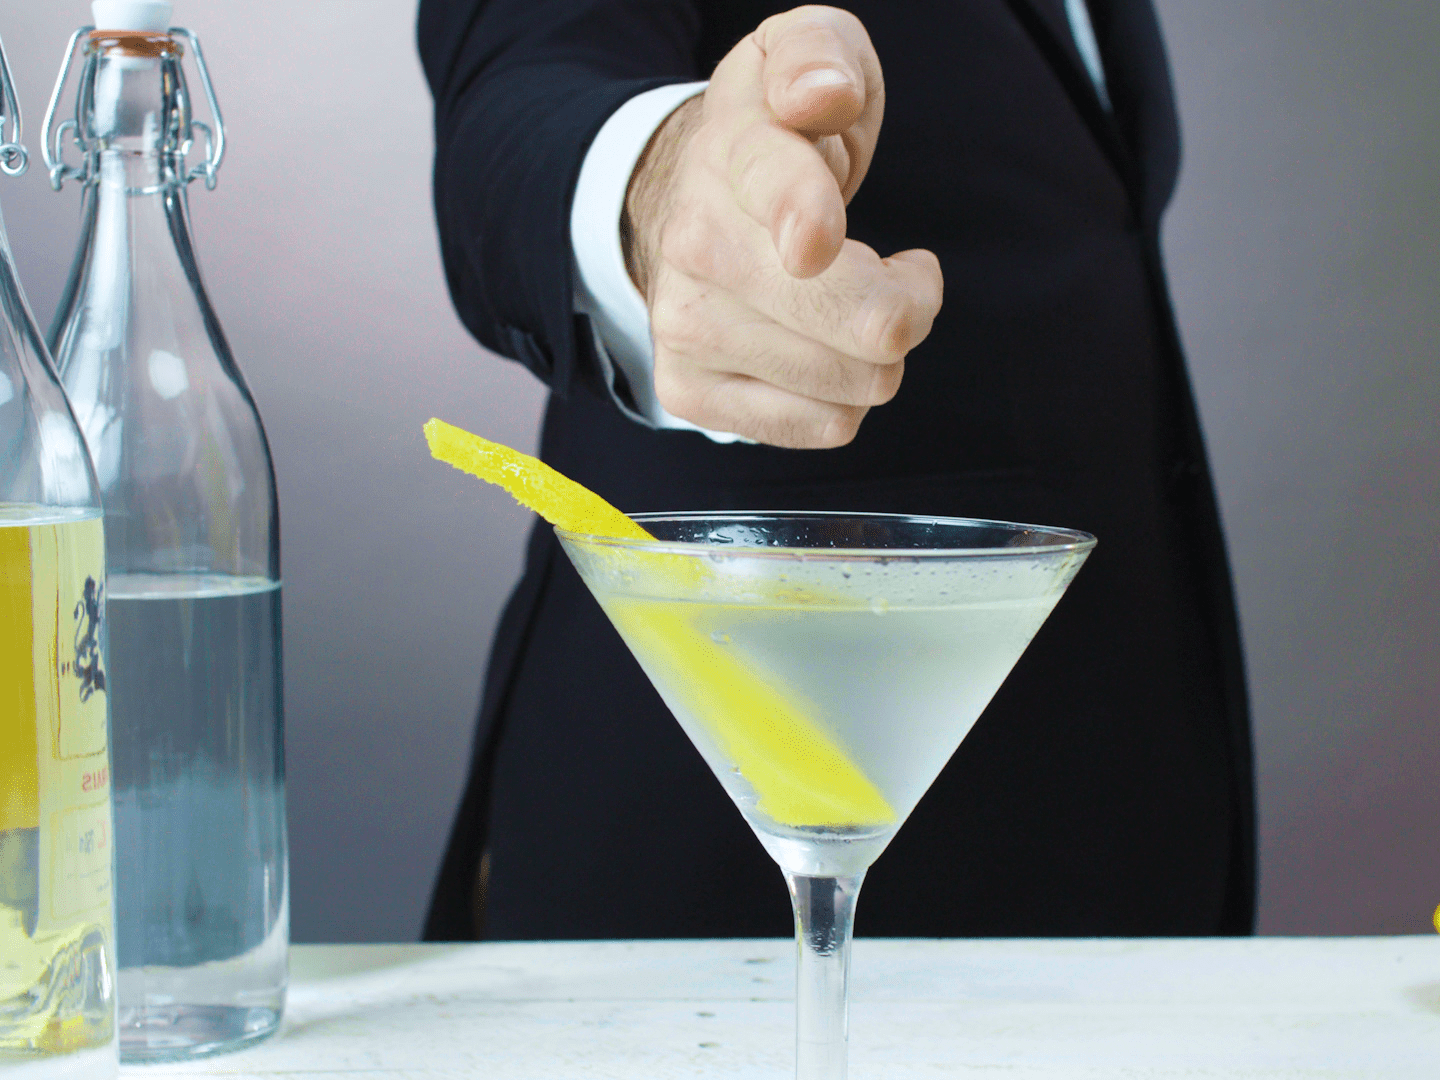 What Does James Bond Drink?